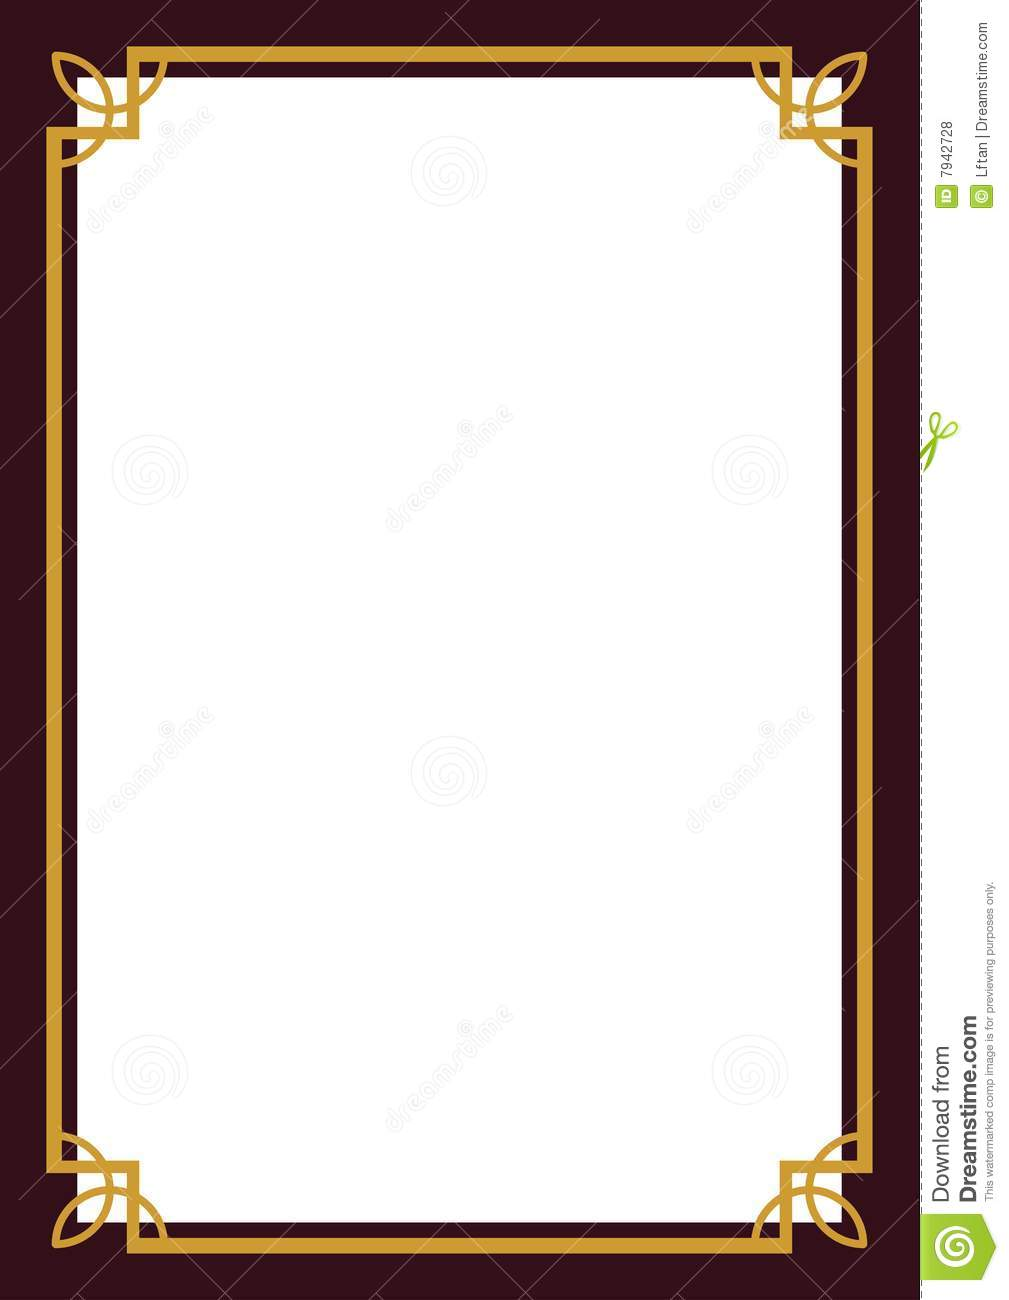 Certificate border stock vector illustration of vector 7942728 certificate border royalty free stock photo download certificate border stock vector yadclub Choice Image